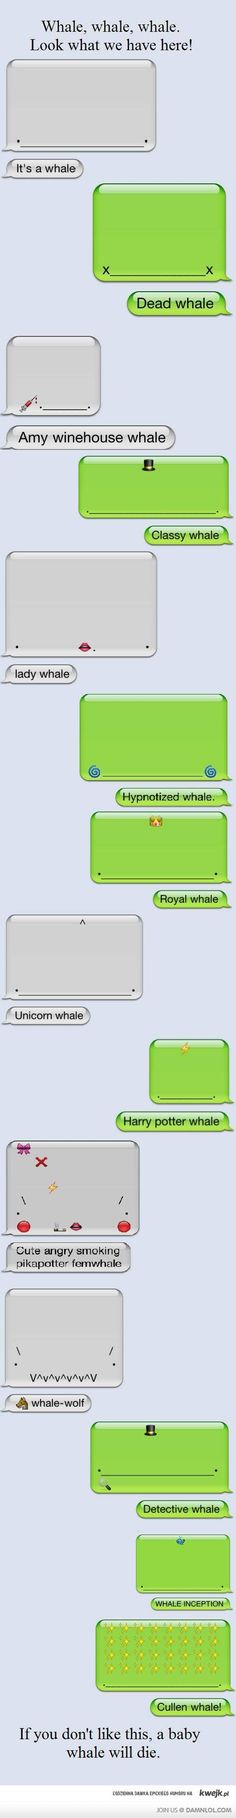 Whales, Whales, Whales! @Katherine Yoon